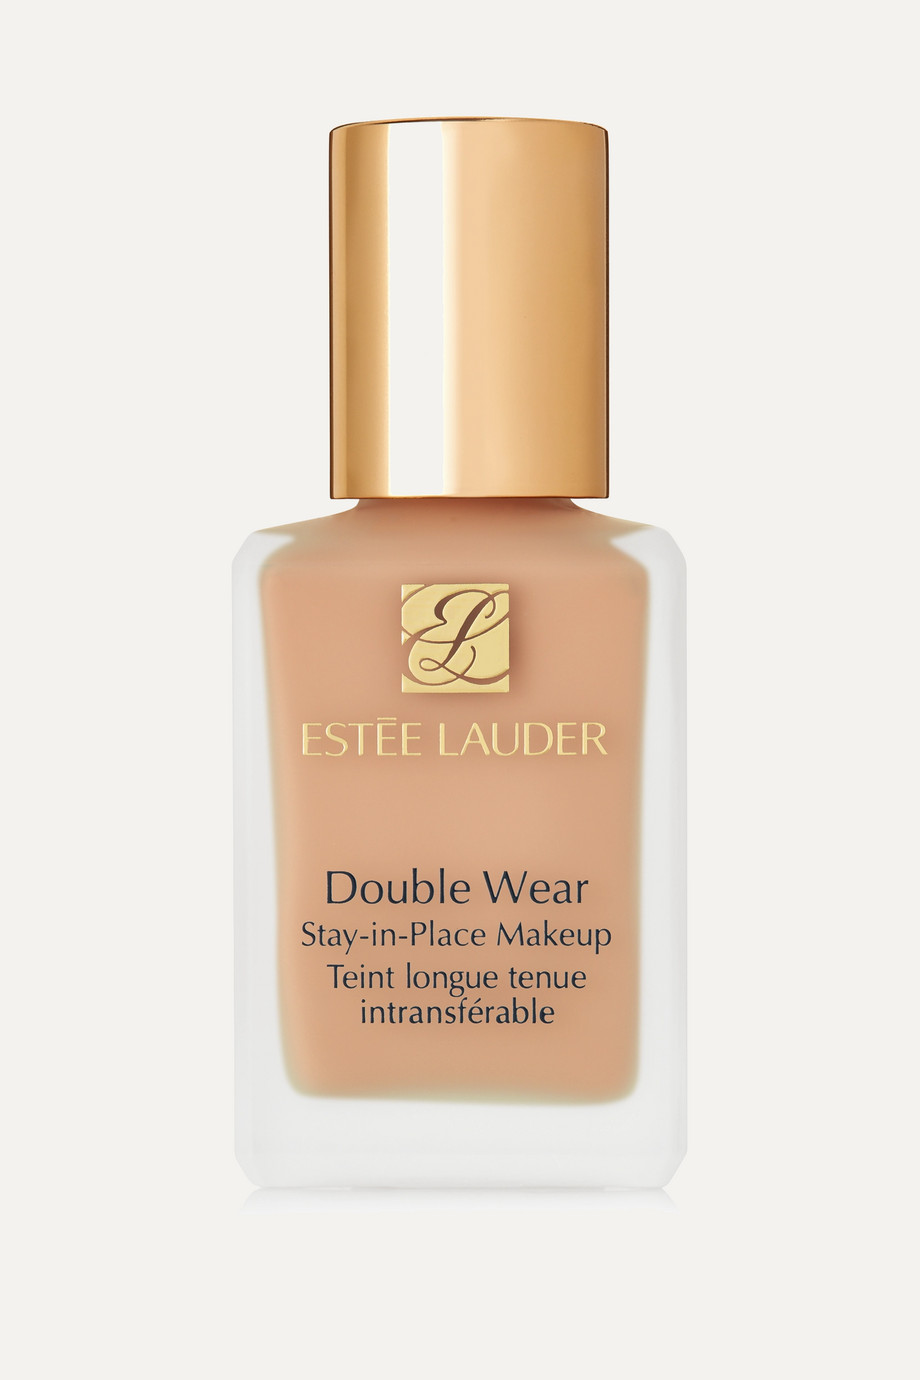 Estée Lauder Double Wear Stay-in-Place Makeup – Ivory Nude 1N1 – Foundation